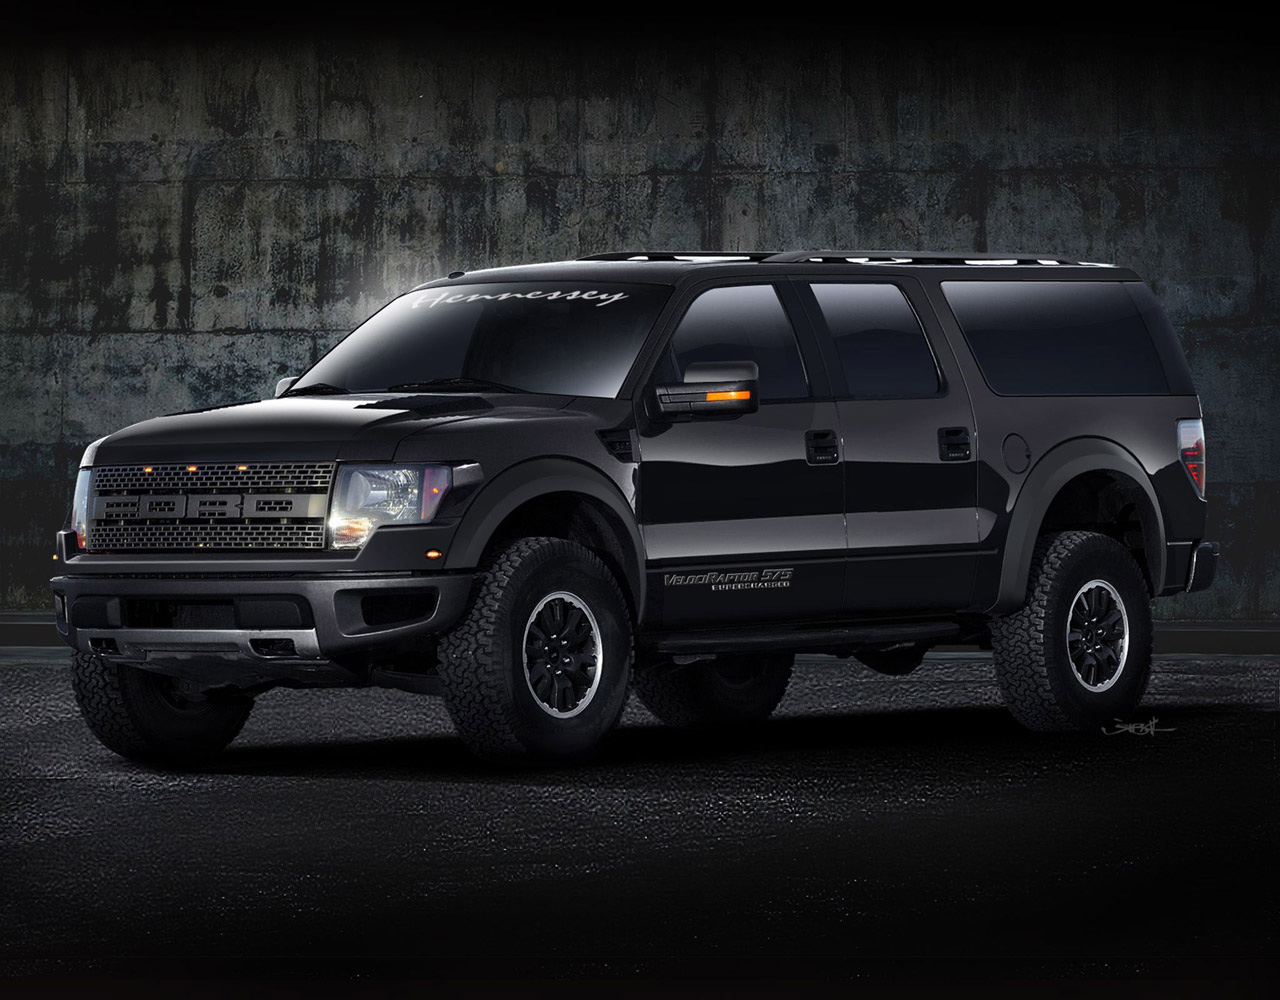 Hennessey VelociRaptor APV - The World's First Armored Performance Vehicle - eXtravaganzi